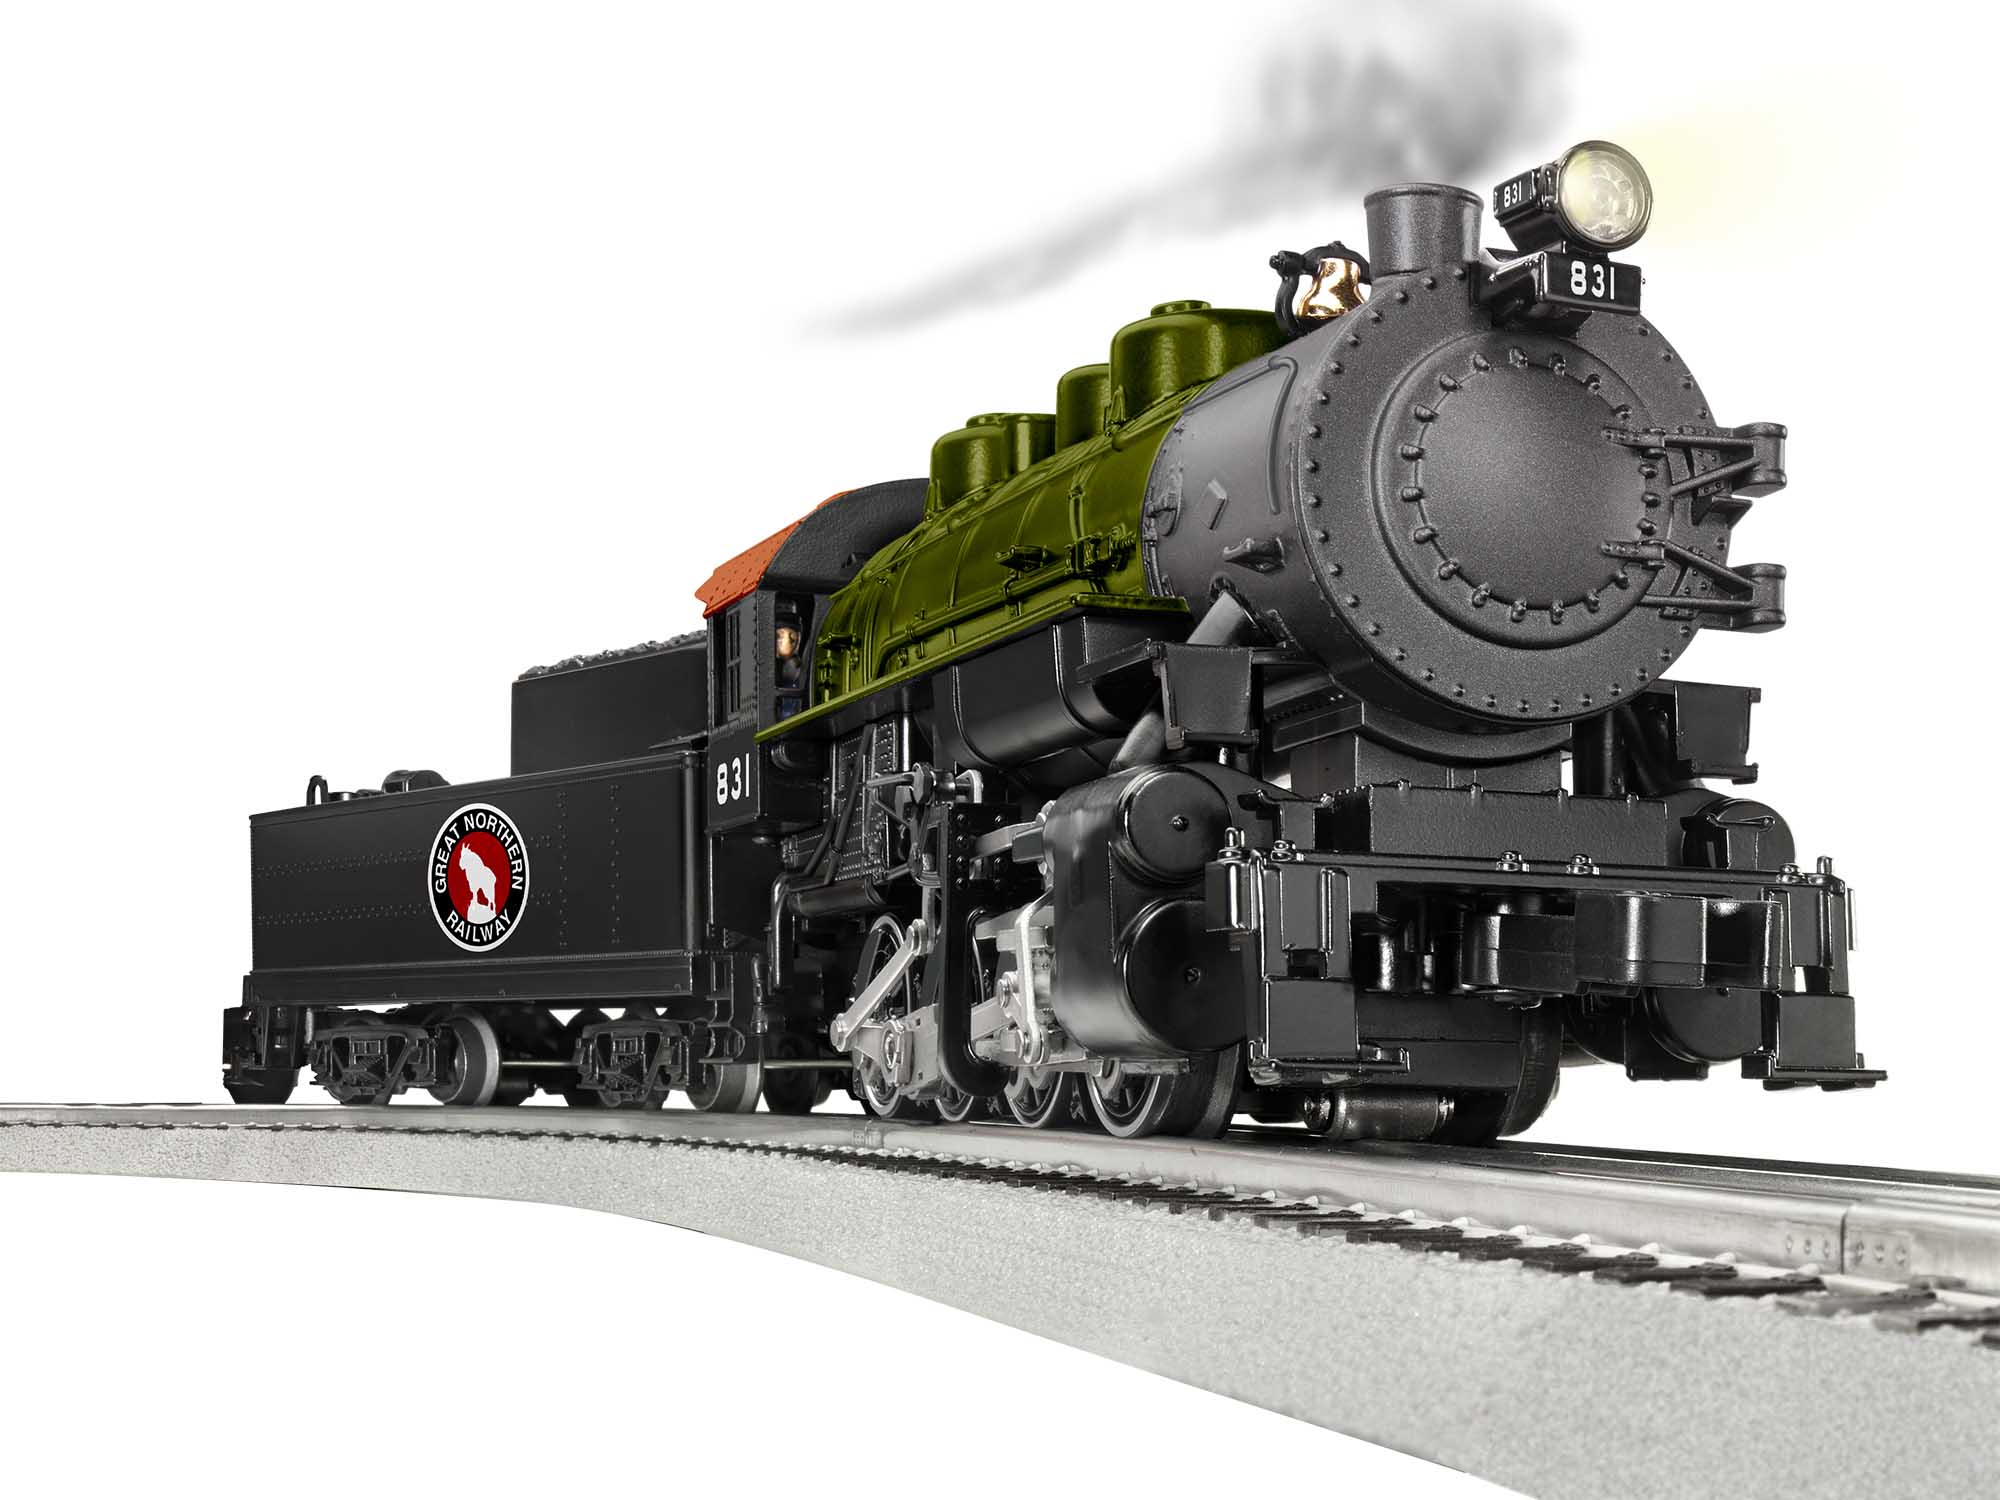 Lionel 2032210 O 0-8-0 LionChief Great Northern #831